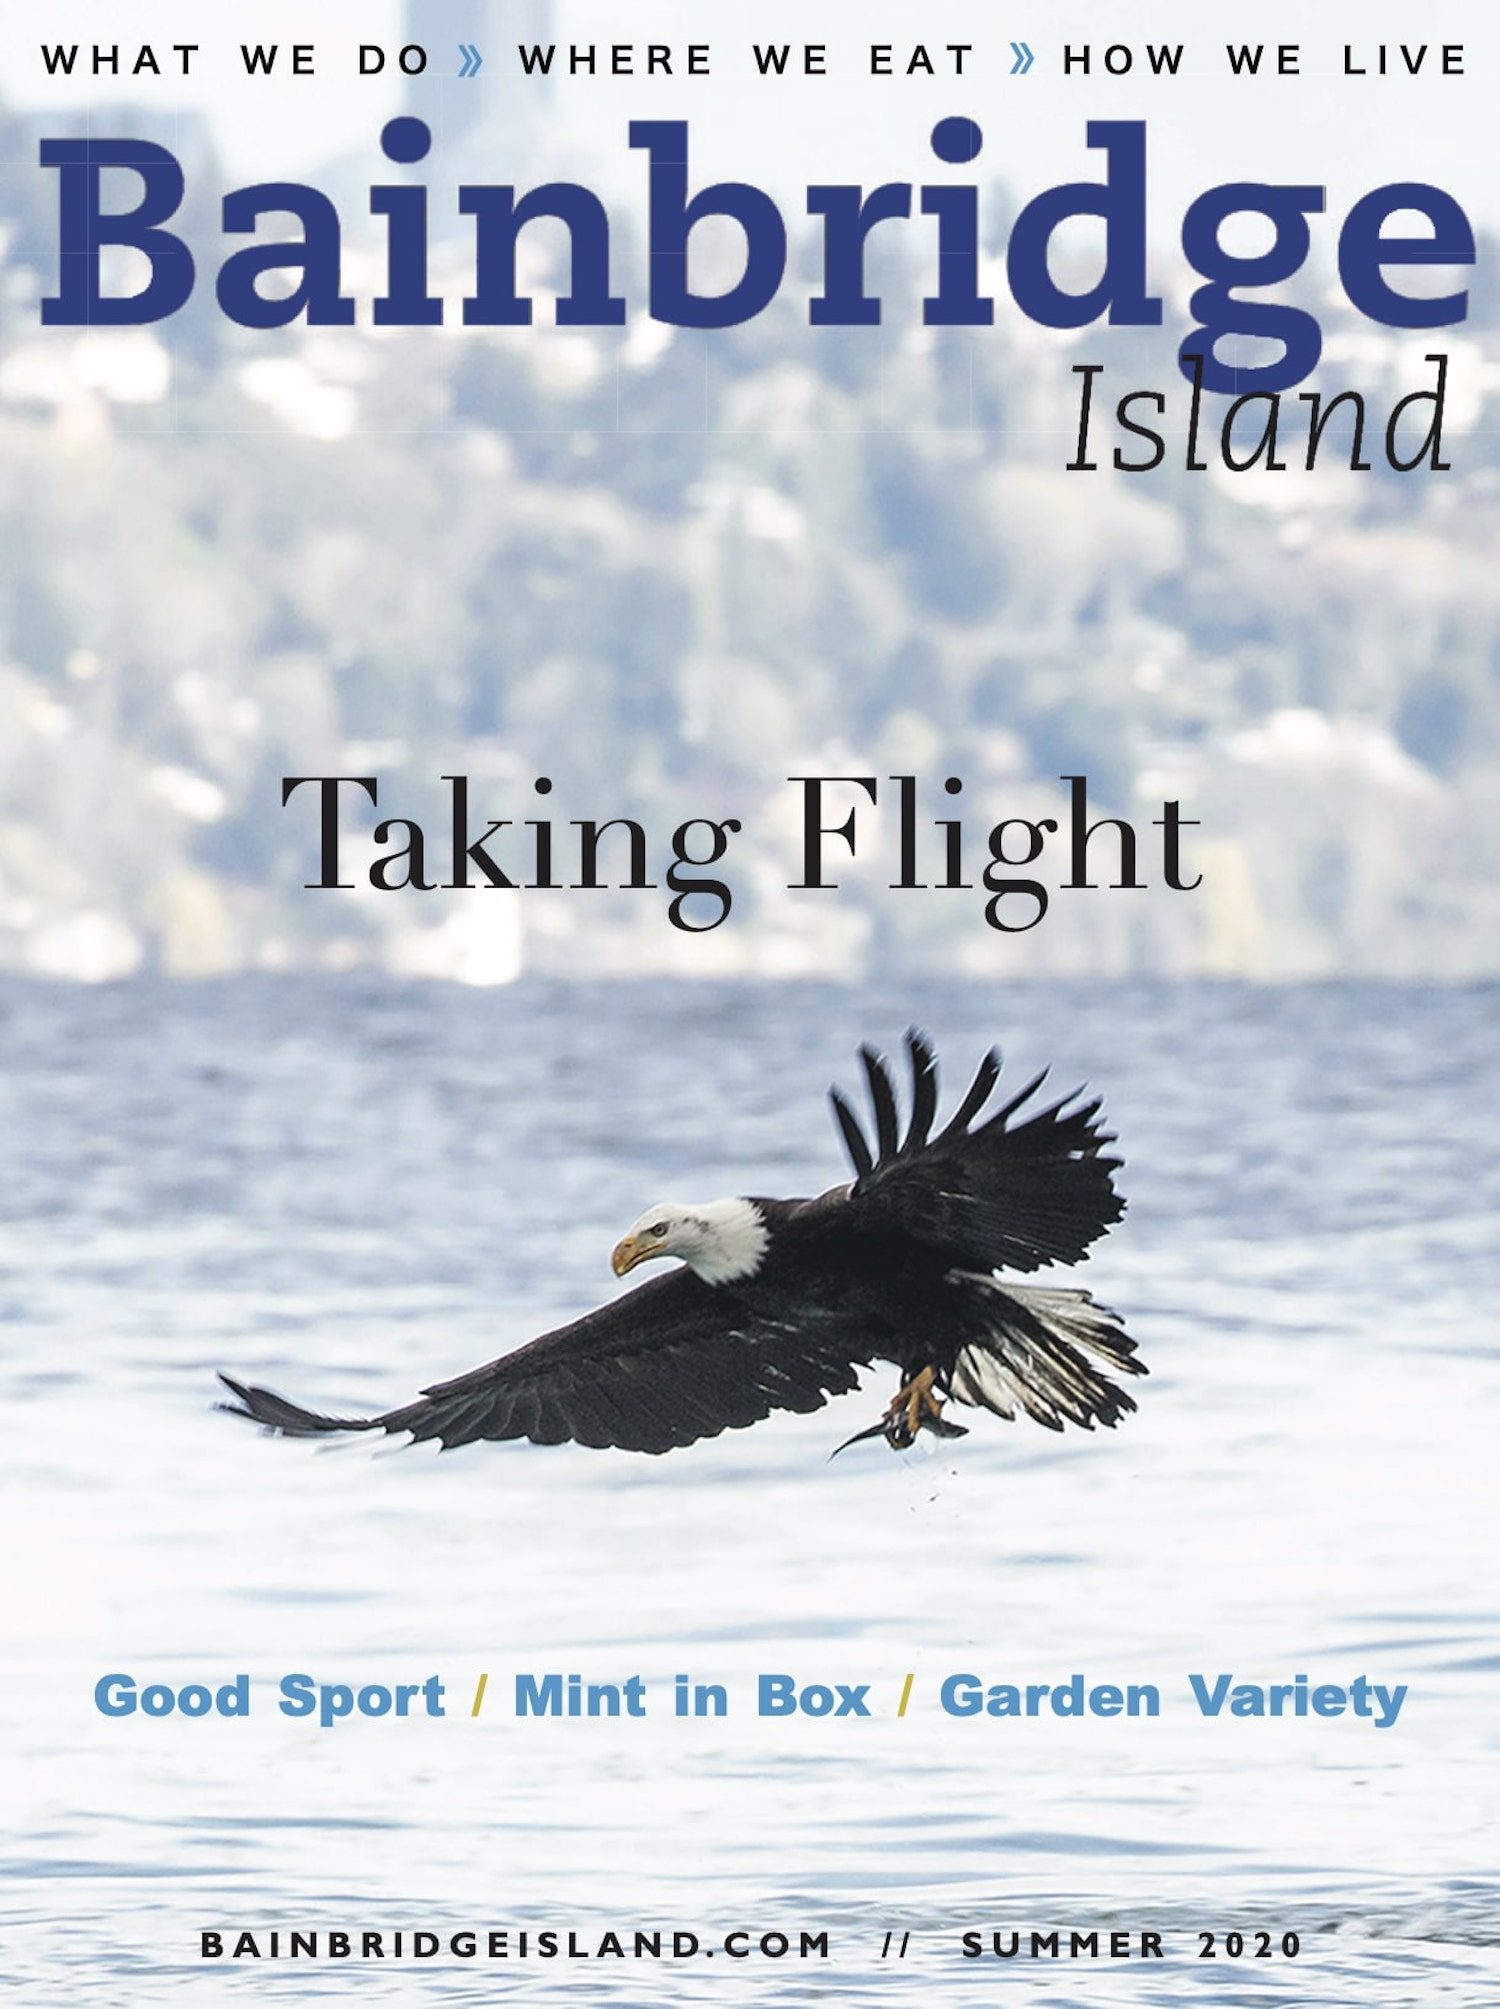 Bainbridge Island Magazine, Summer 2020